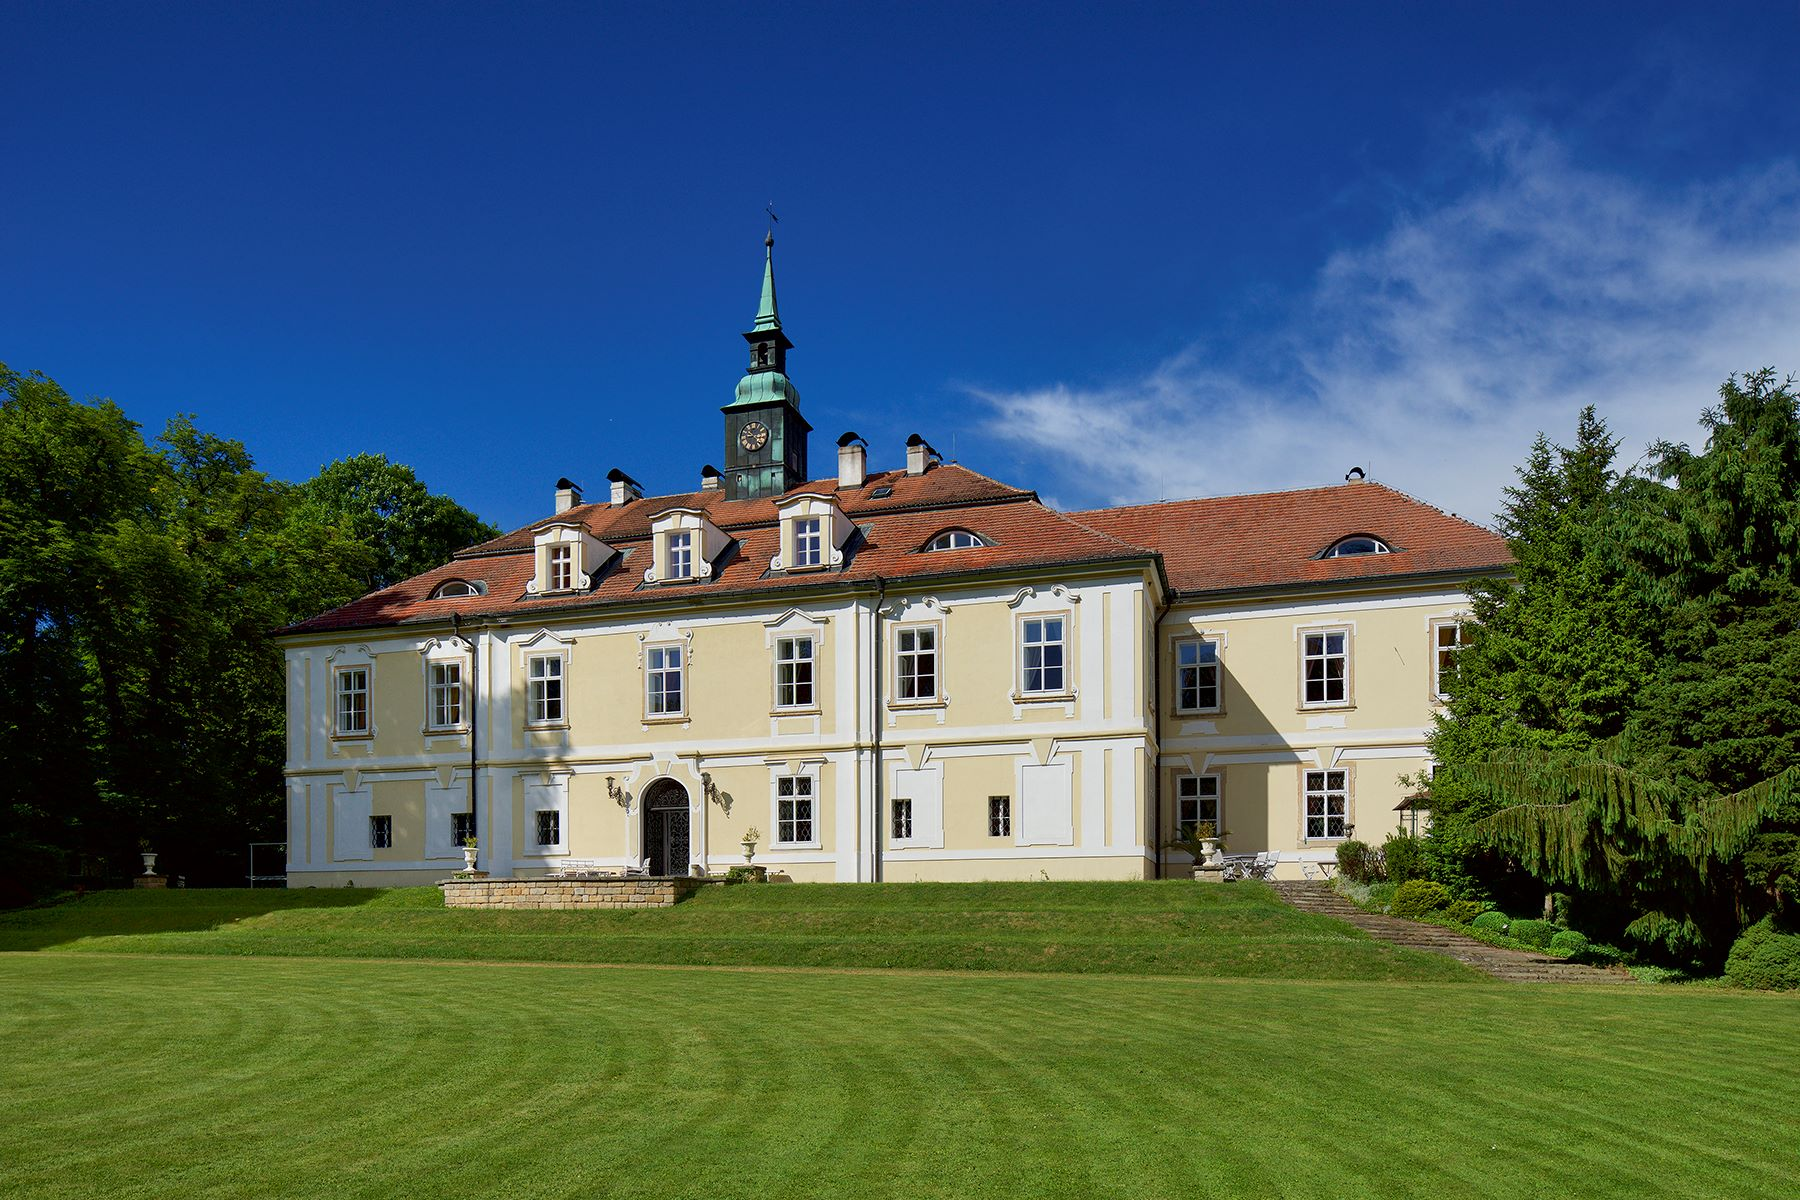 Single Family Home for Sale at Renaissance Castle in Central Bohemia Other Central Bohemia, Central Bohemia, Czech Republic